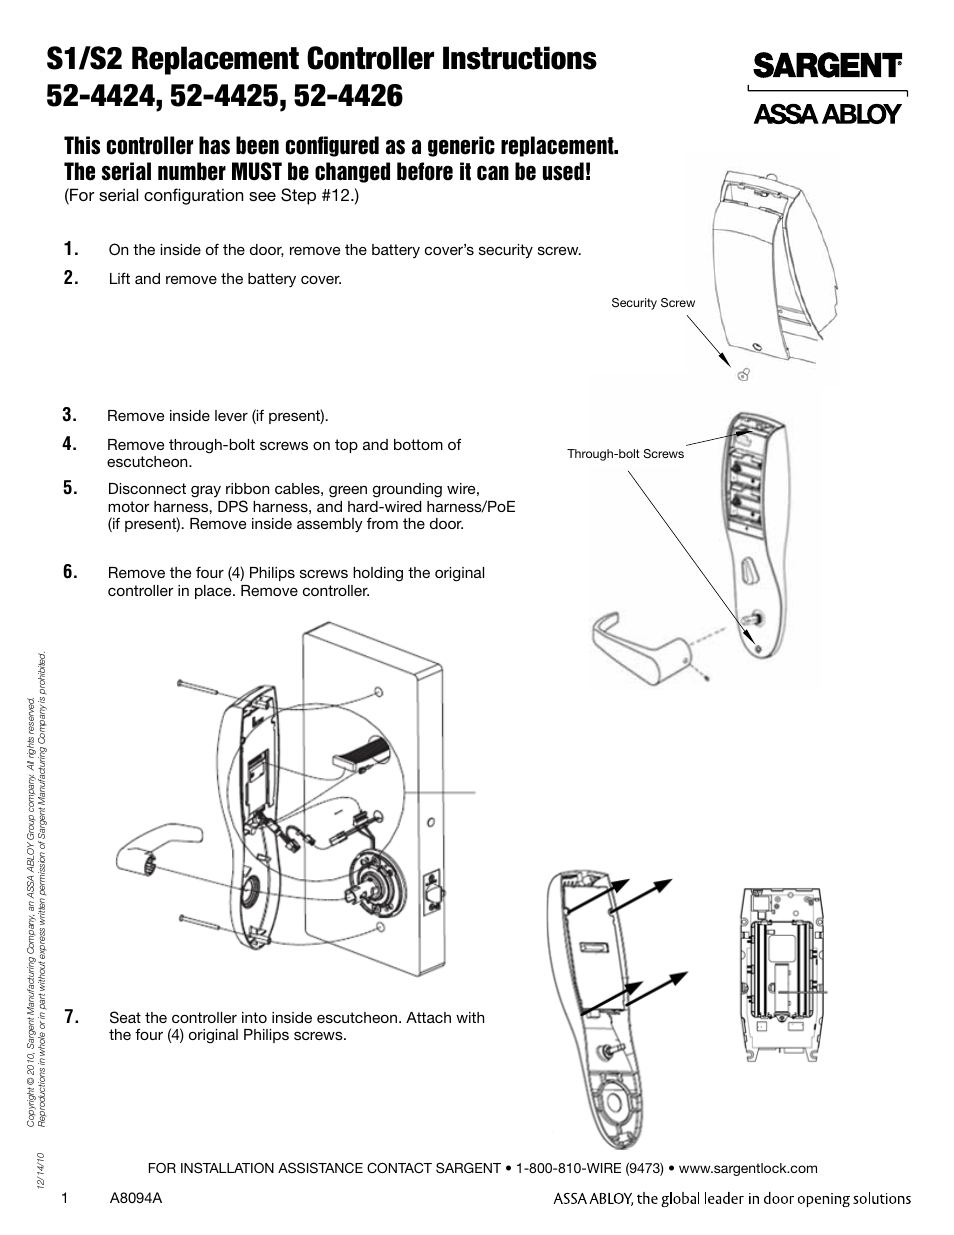 Schlage Mortise Lock Parts Diagram Manual Guide